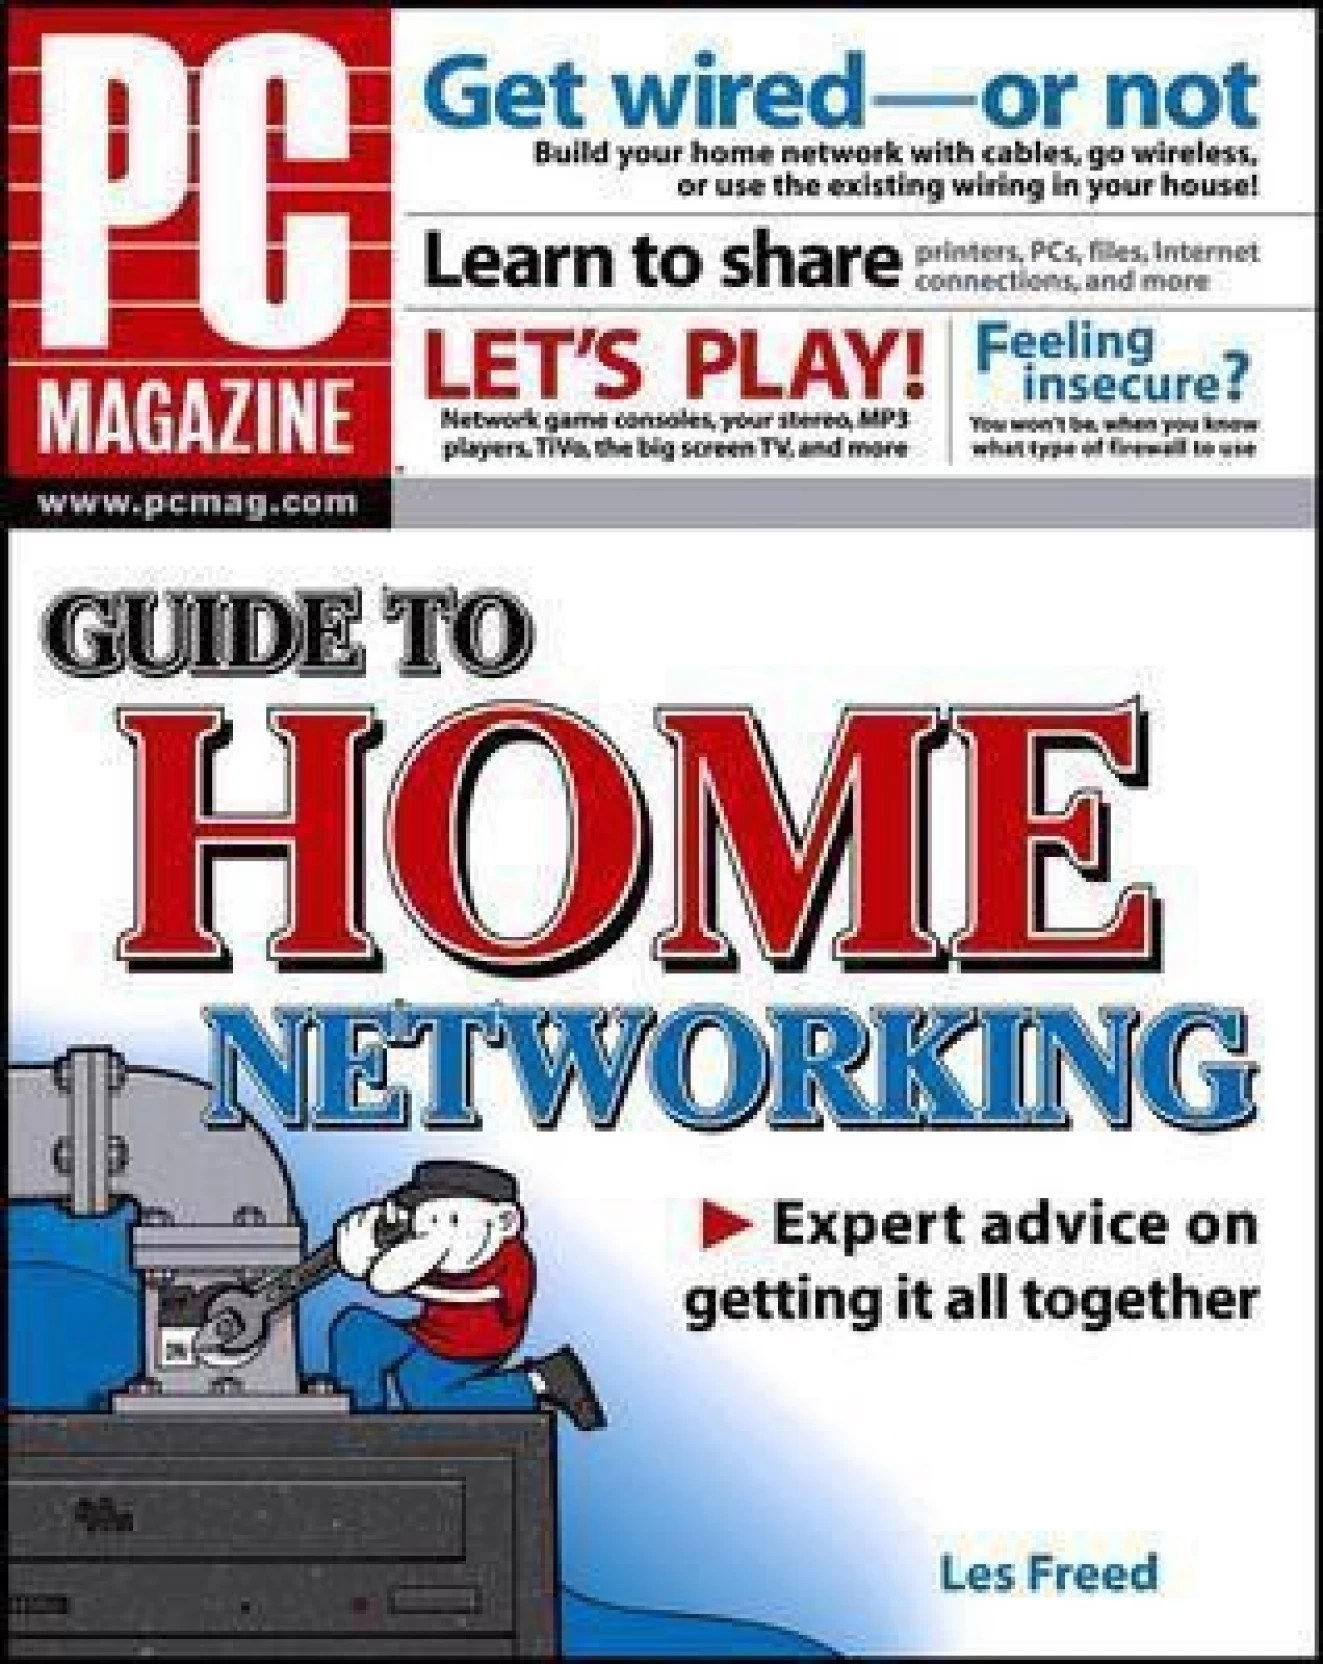 pc magazine guide to home networking english paperback les freed  [ 1323 x 1664 Pixel ]